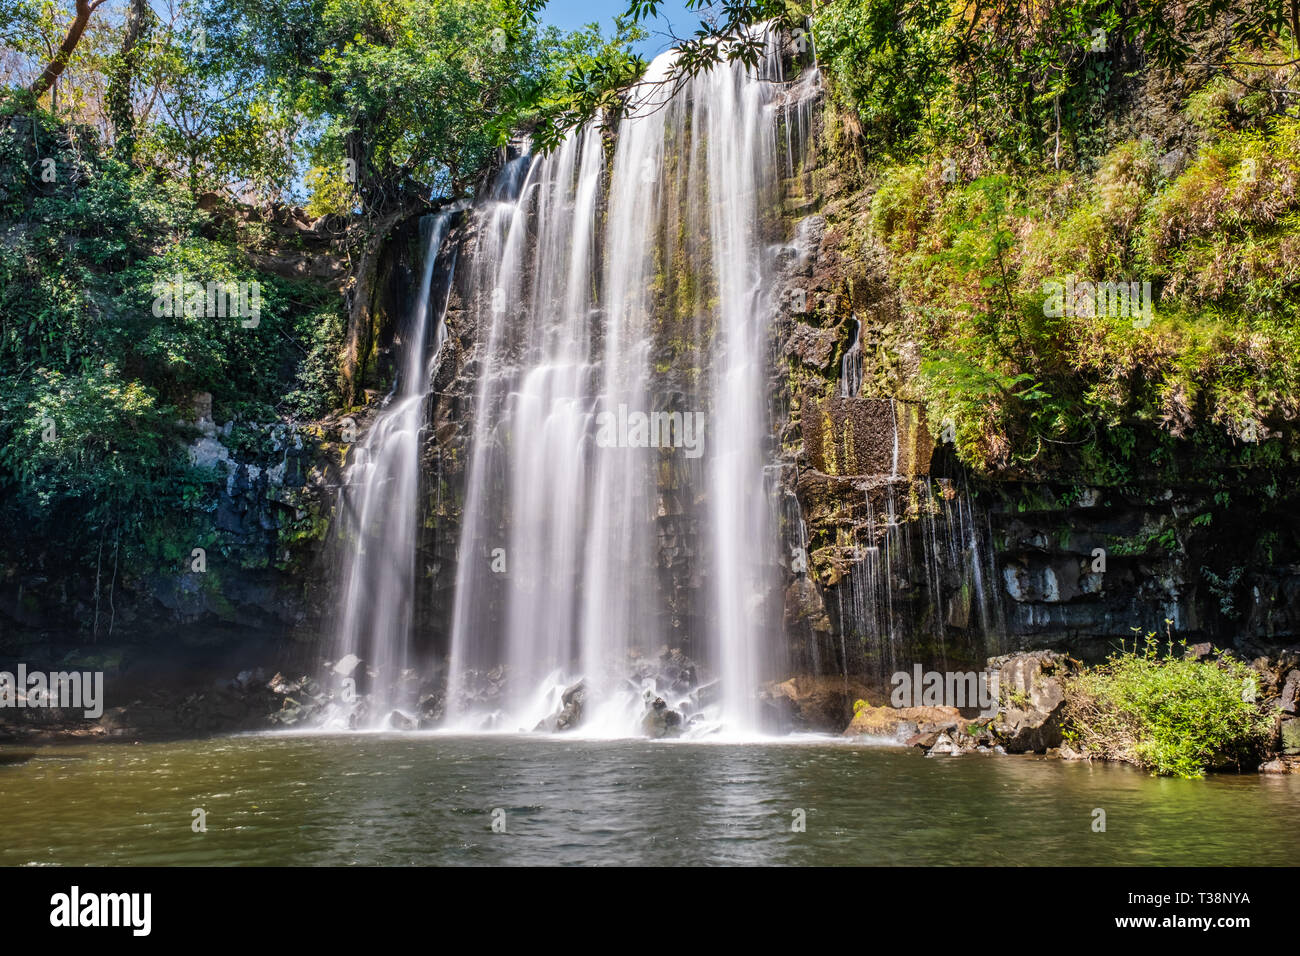 A wide ribbon of streaming water falls 12 metres over the rocks and moss of the Llanos de Cortez waterfall near Liberia, Costa Rica. - Stock Image